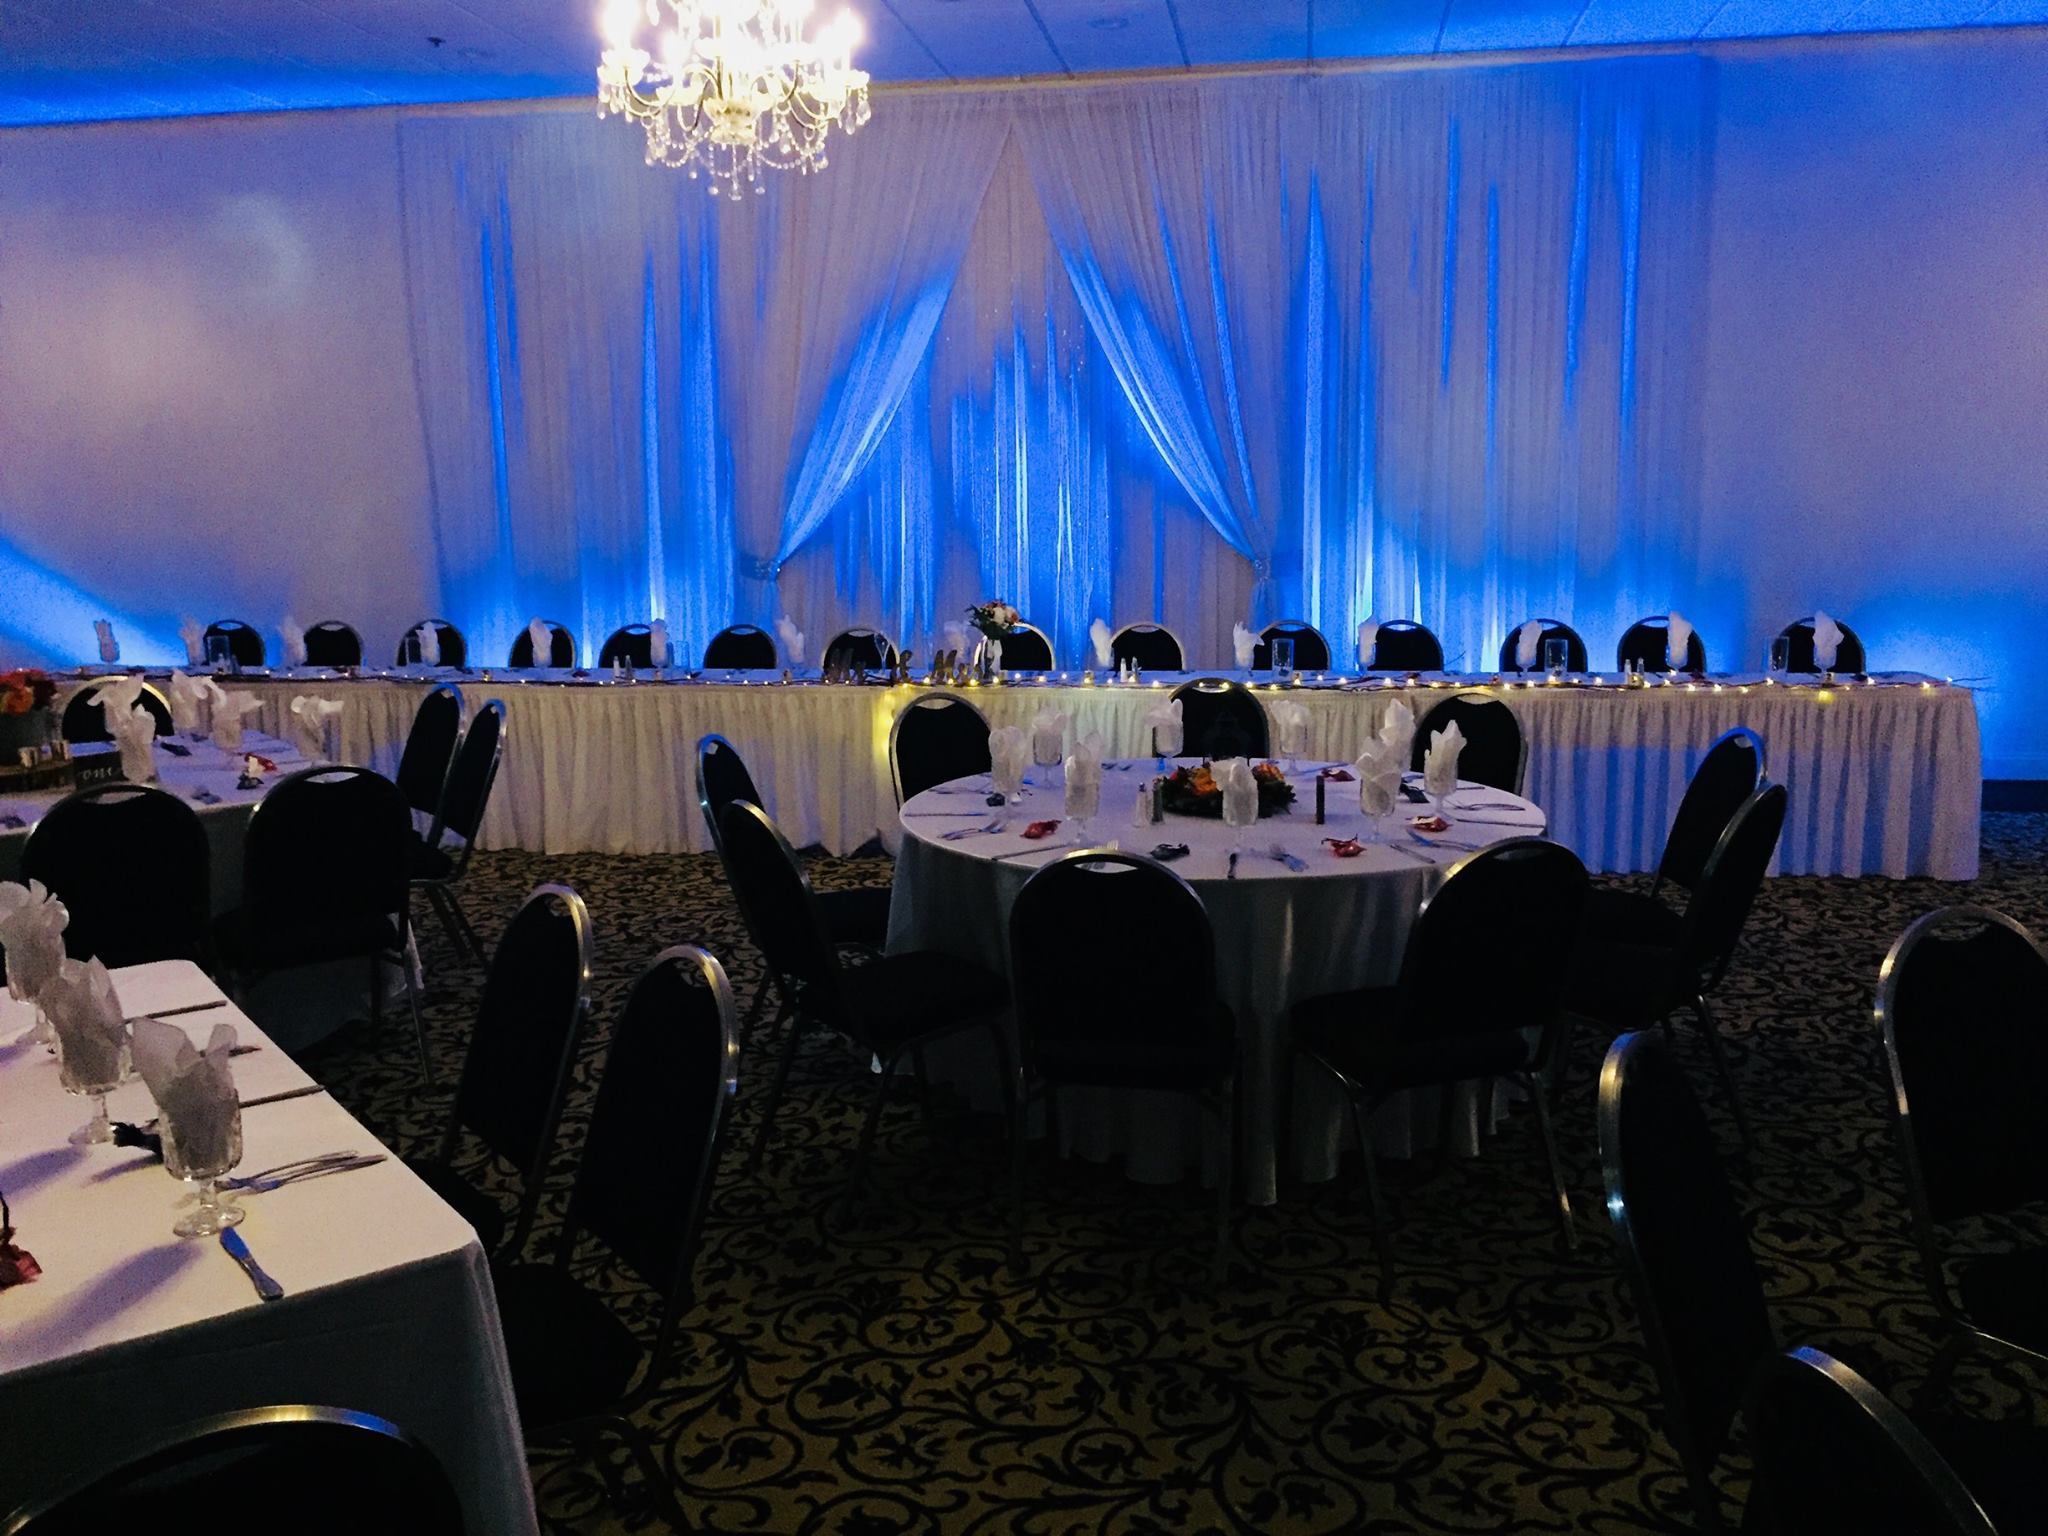 large event room with many tables covered in white cloths with silverware and wine glasses